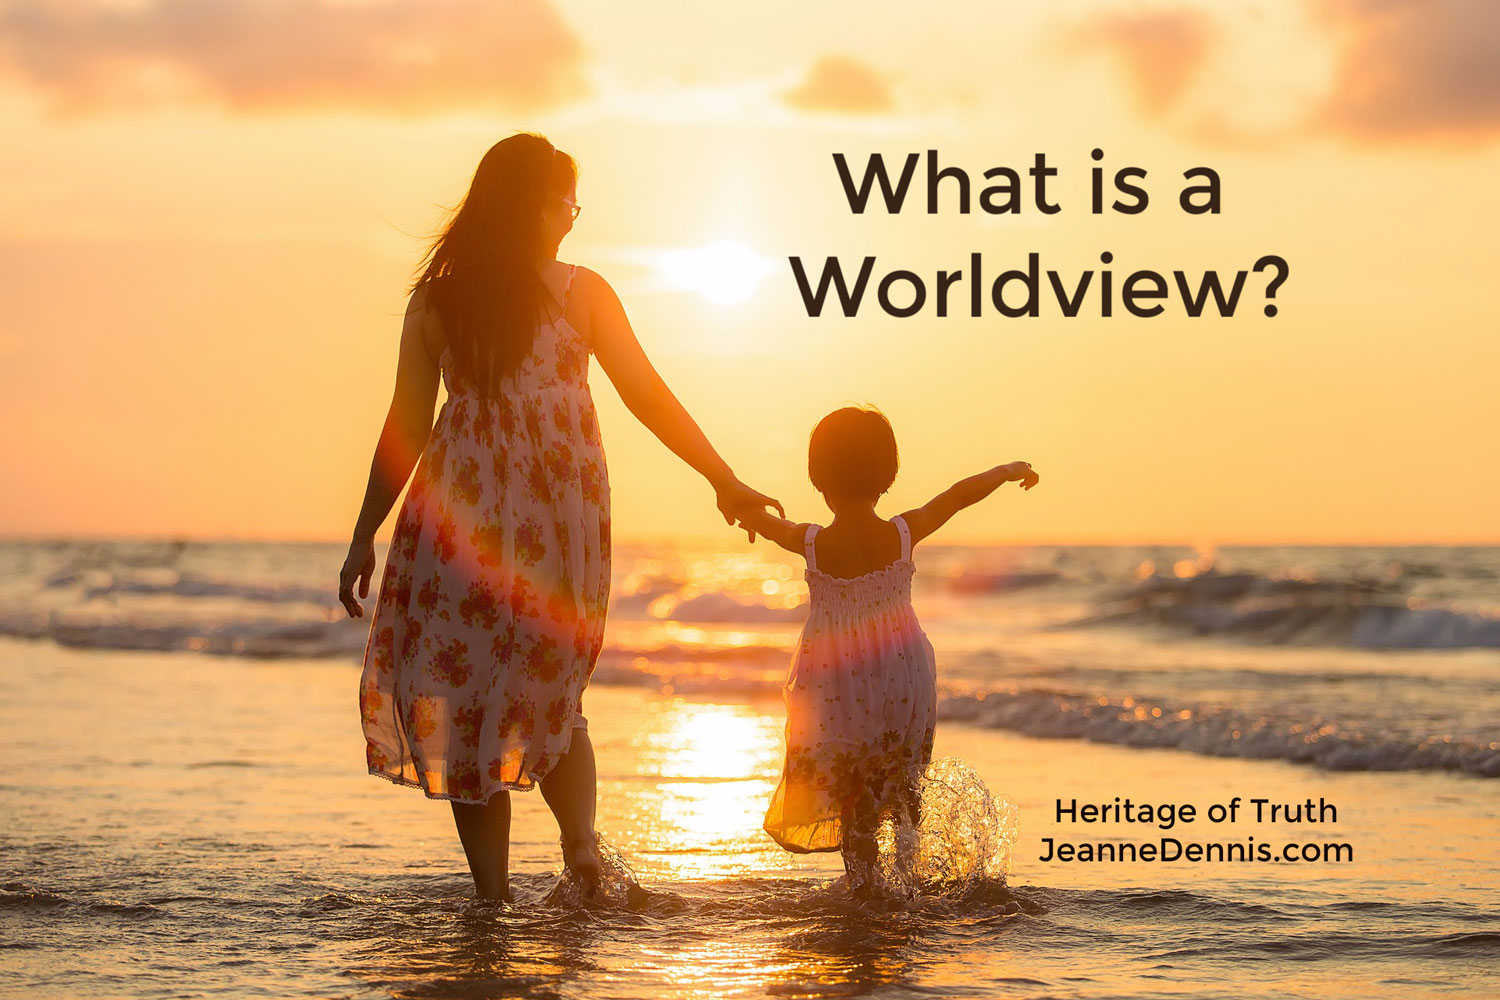 What is a worldview? Heritage of Truth, JeanneDennis.com